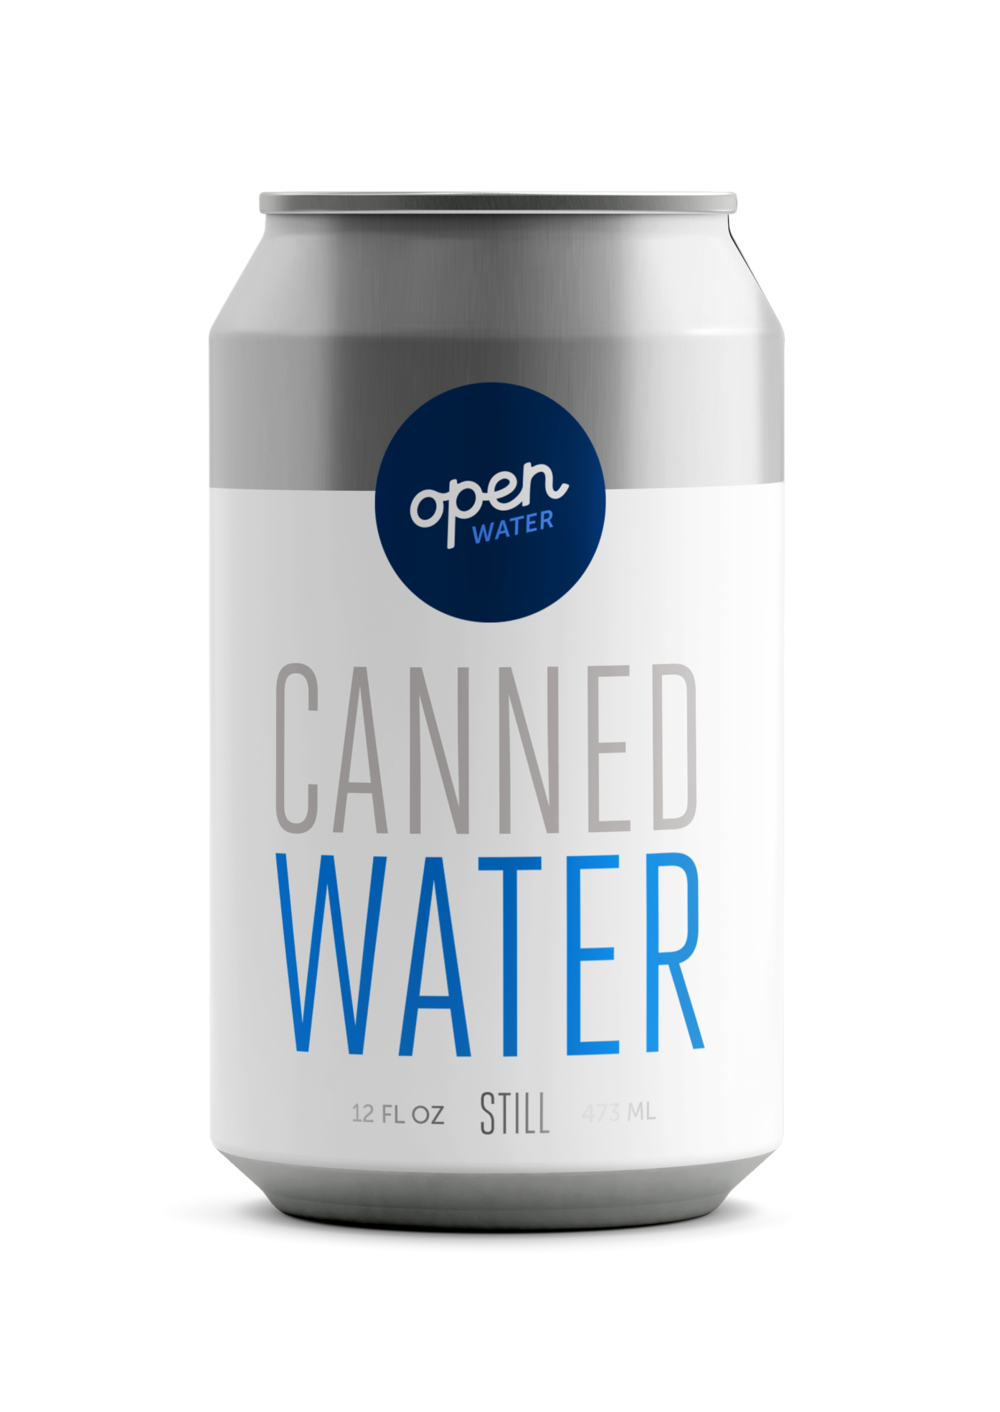 Open Water - Sustainable canned water